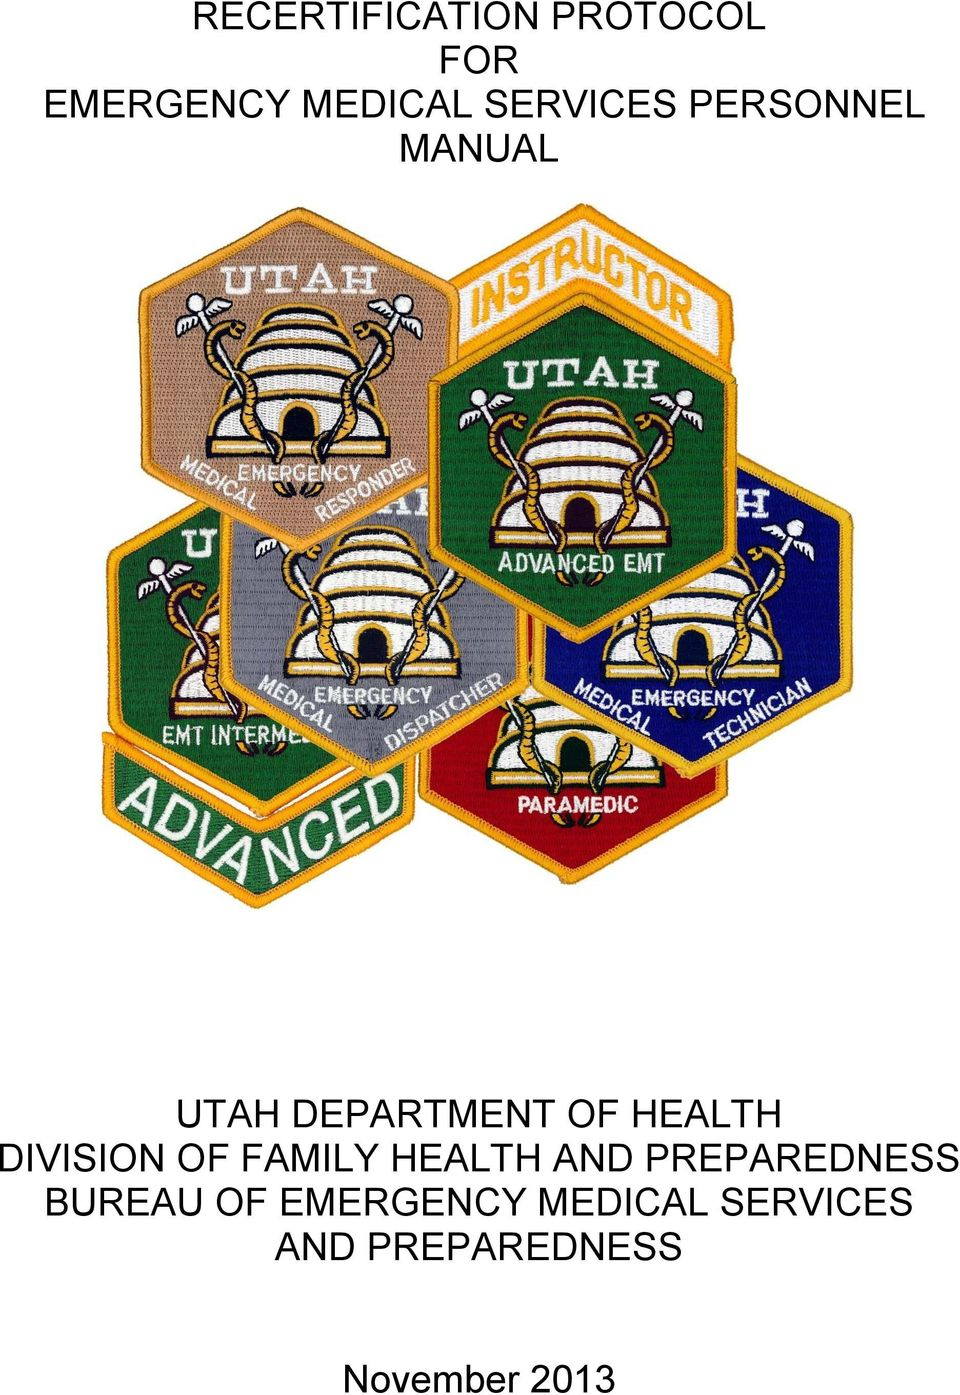 DIVISION OF FAMILY HEALTH AND PREPAREDNESS BUREAU OF